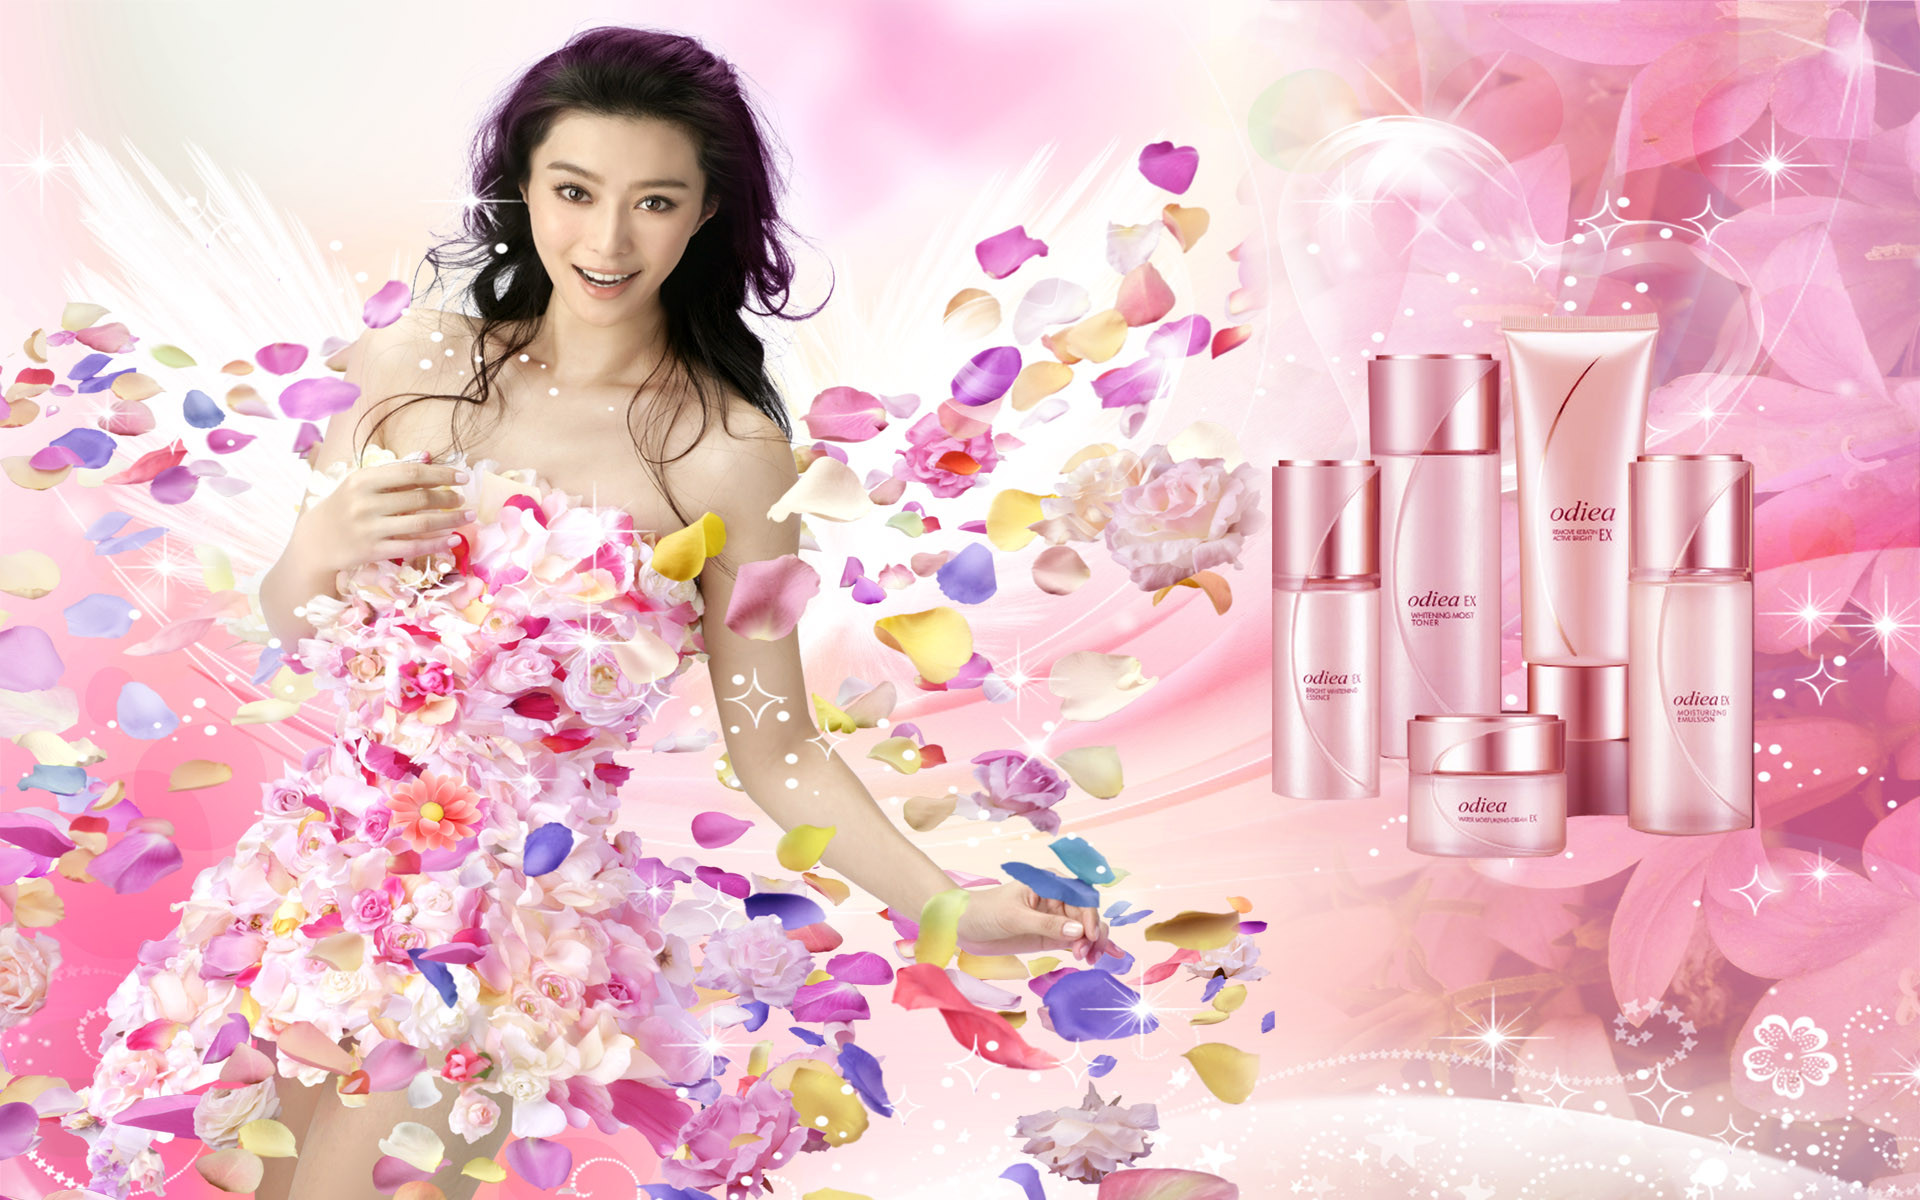 HD cosmetics ads wallpaper 4100